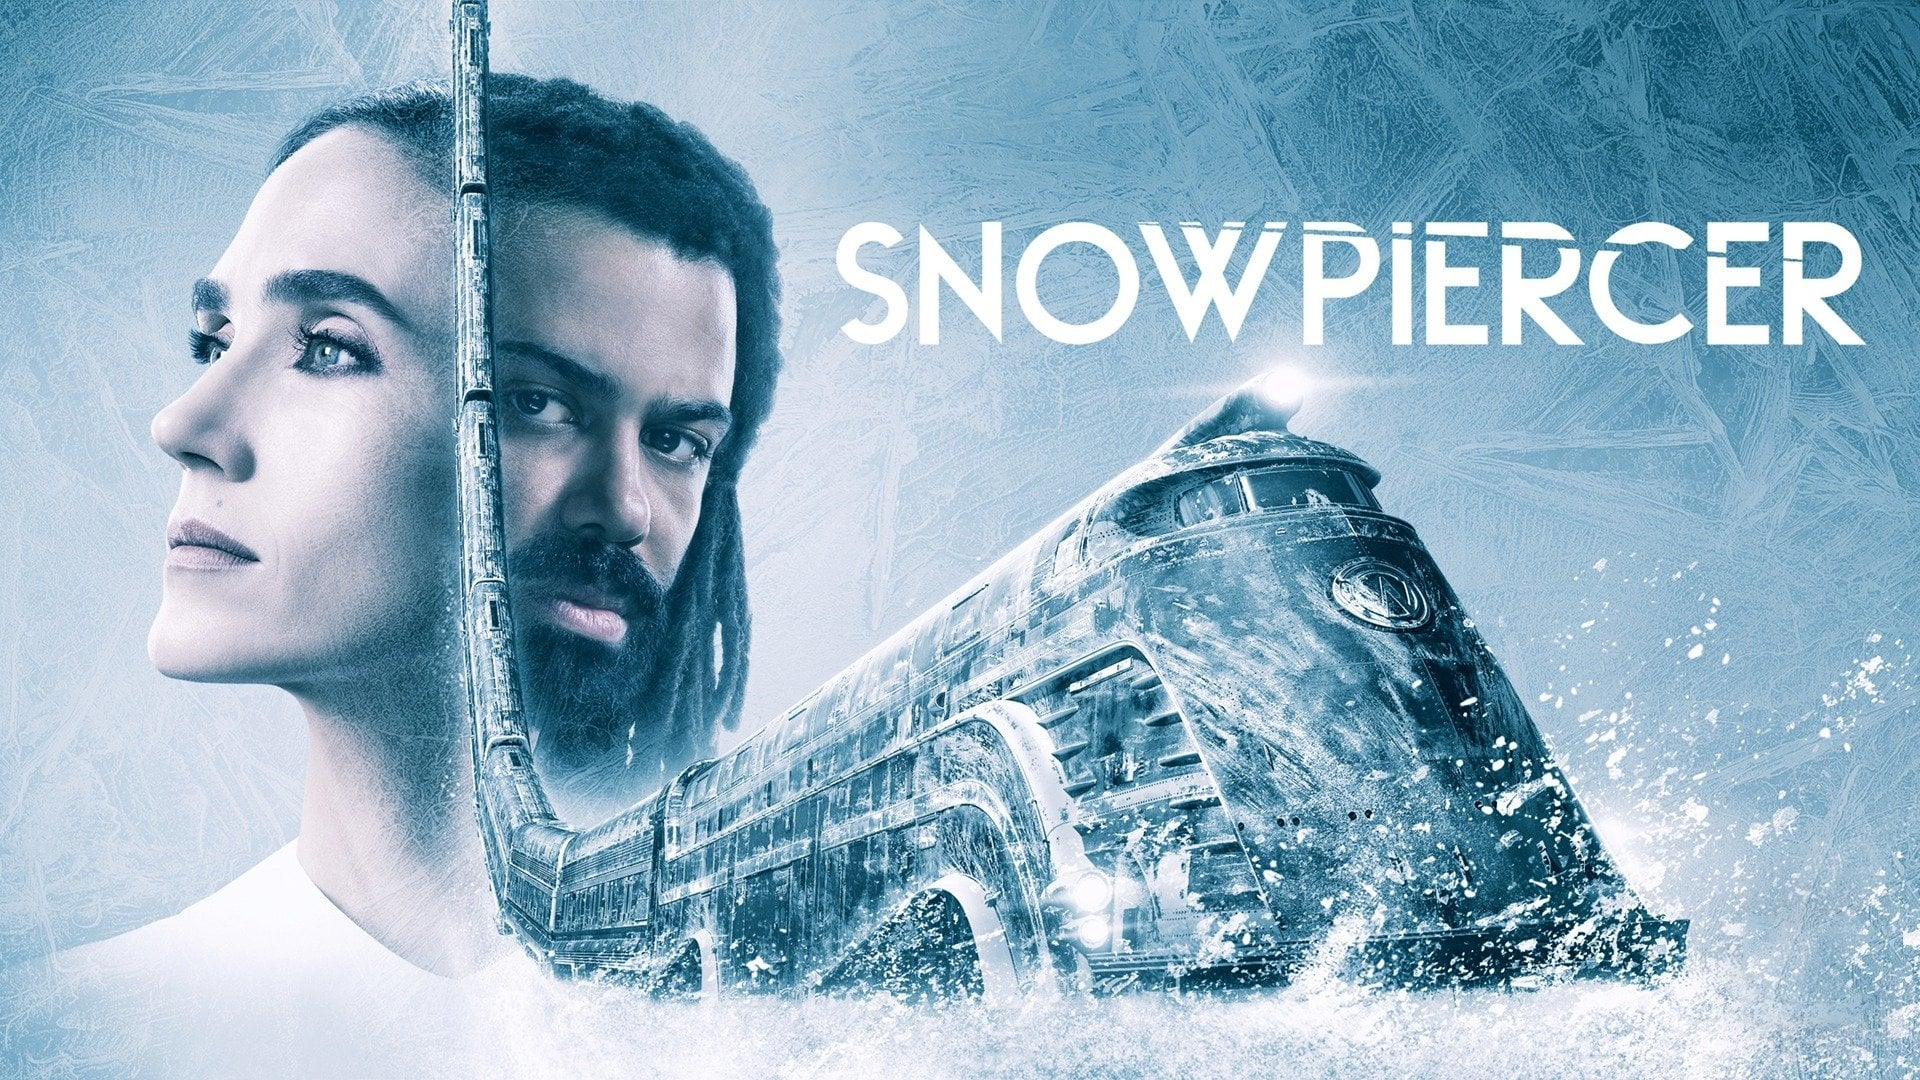 Snowpiercer Season 2 Episode 6